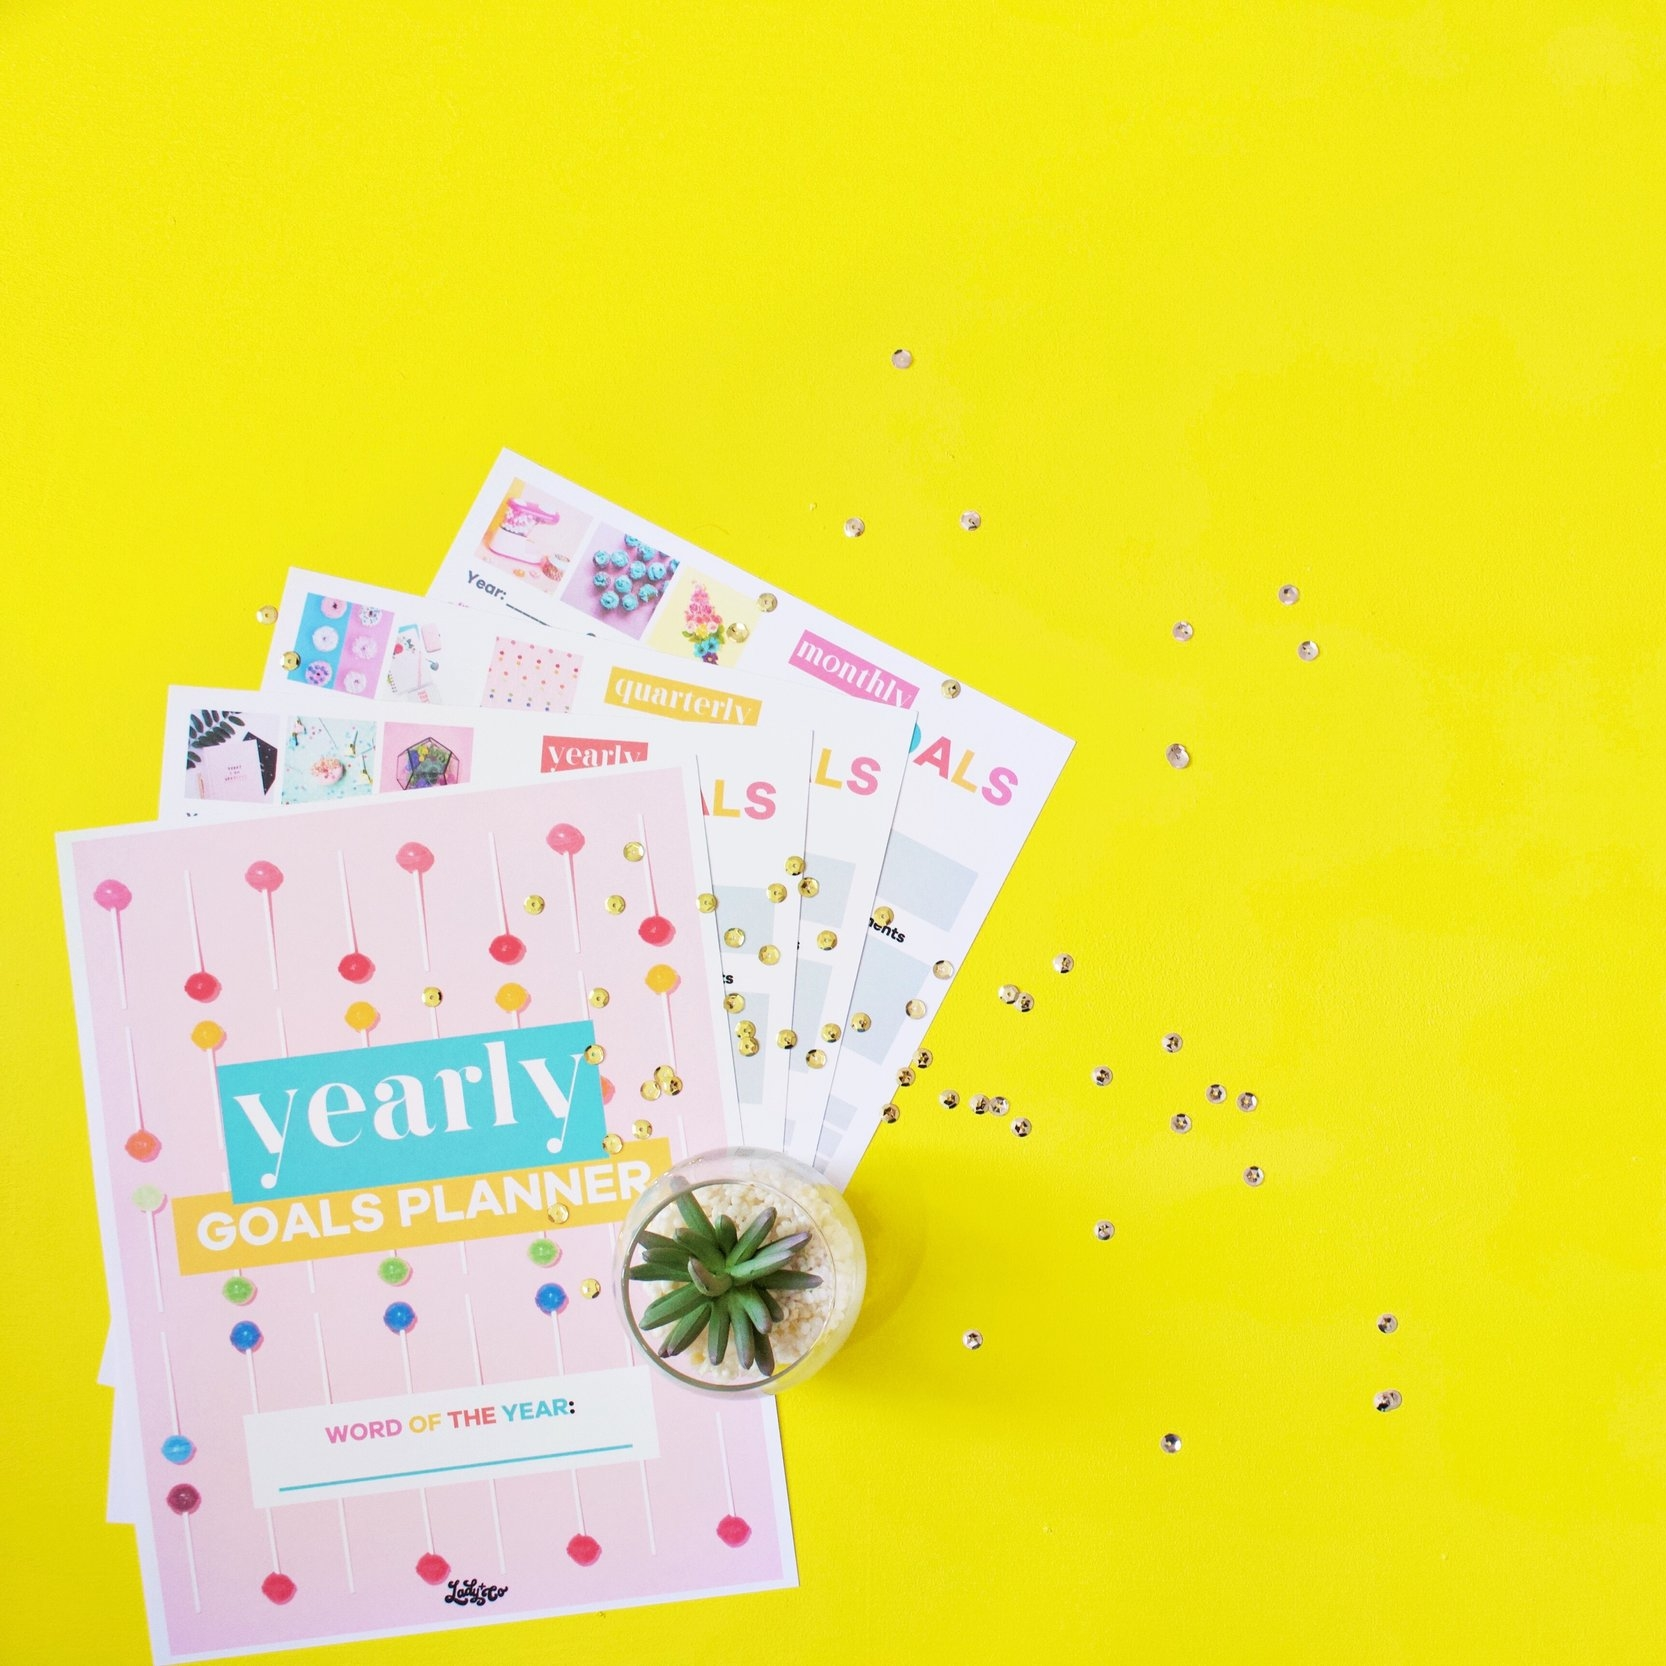 yearly goals planner | lady and company creative | brand coaching